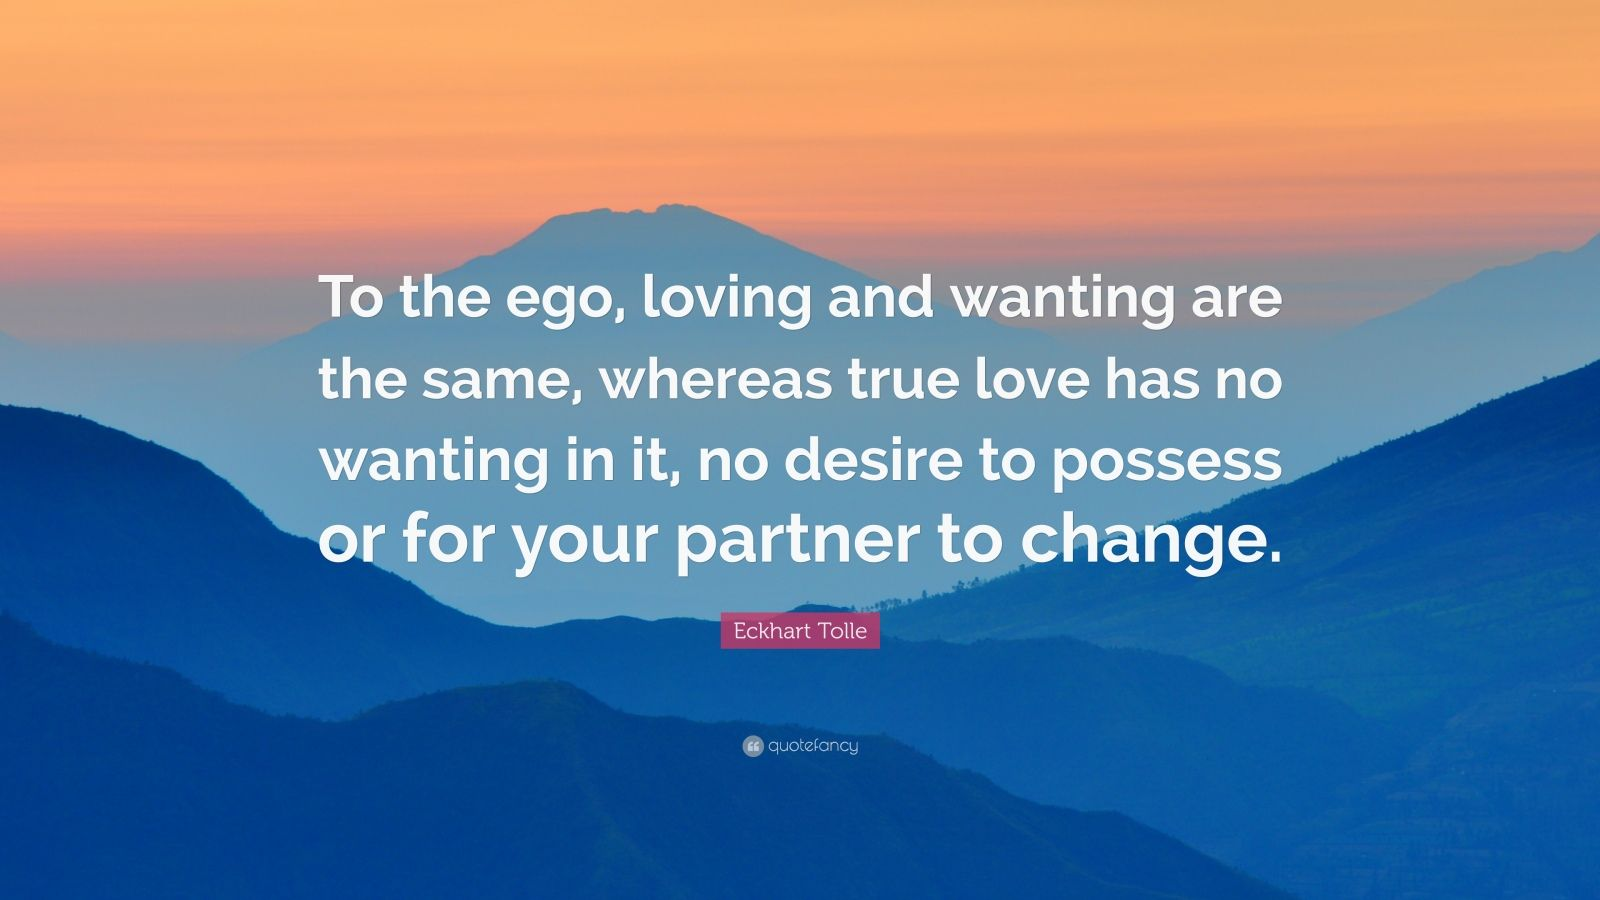 """Eckhart Tolle Quote: """"To the ego, loving and wanting are the same, whereas true love has no wanting in it, no desire to possess or for your partner to change."""""""